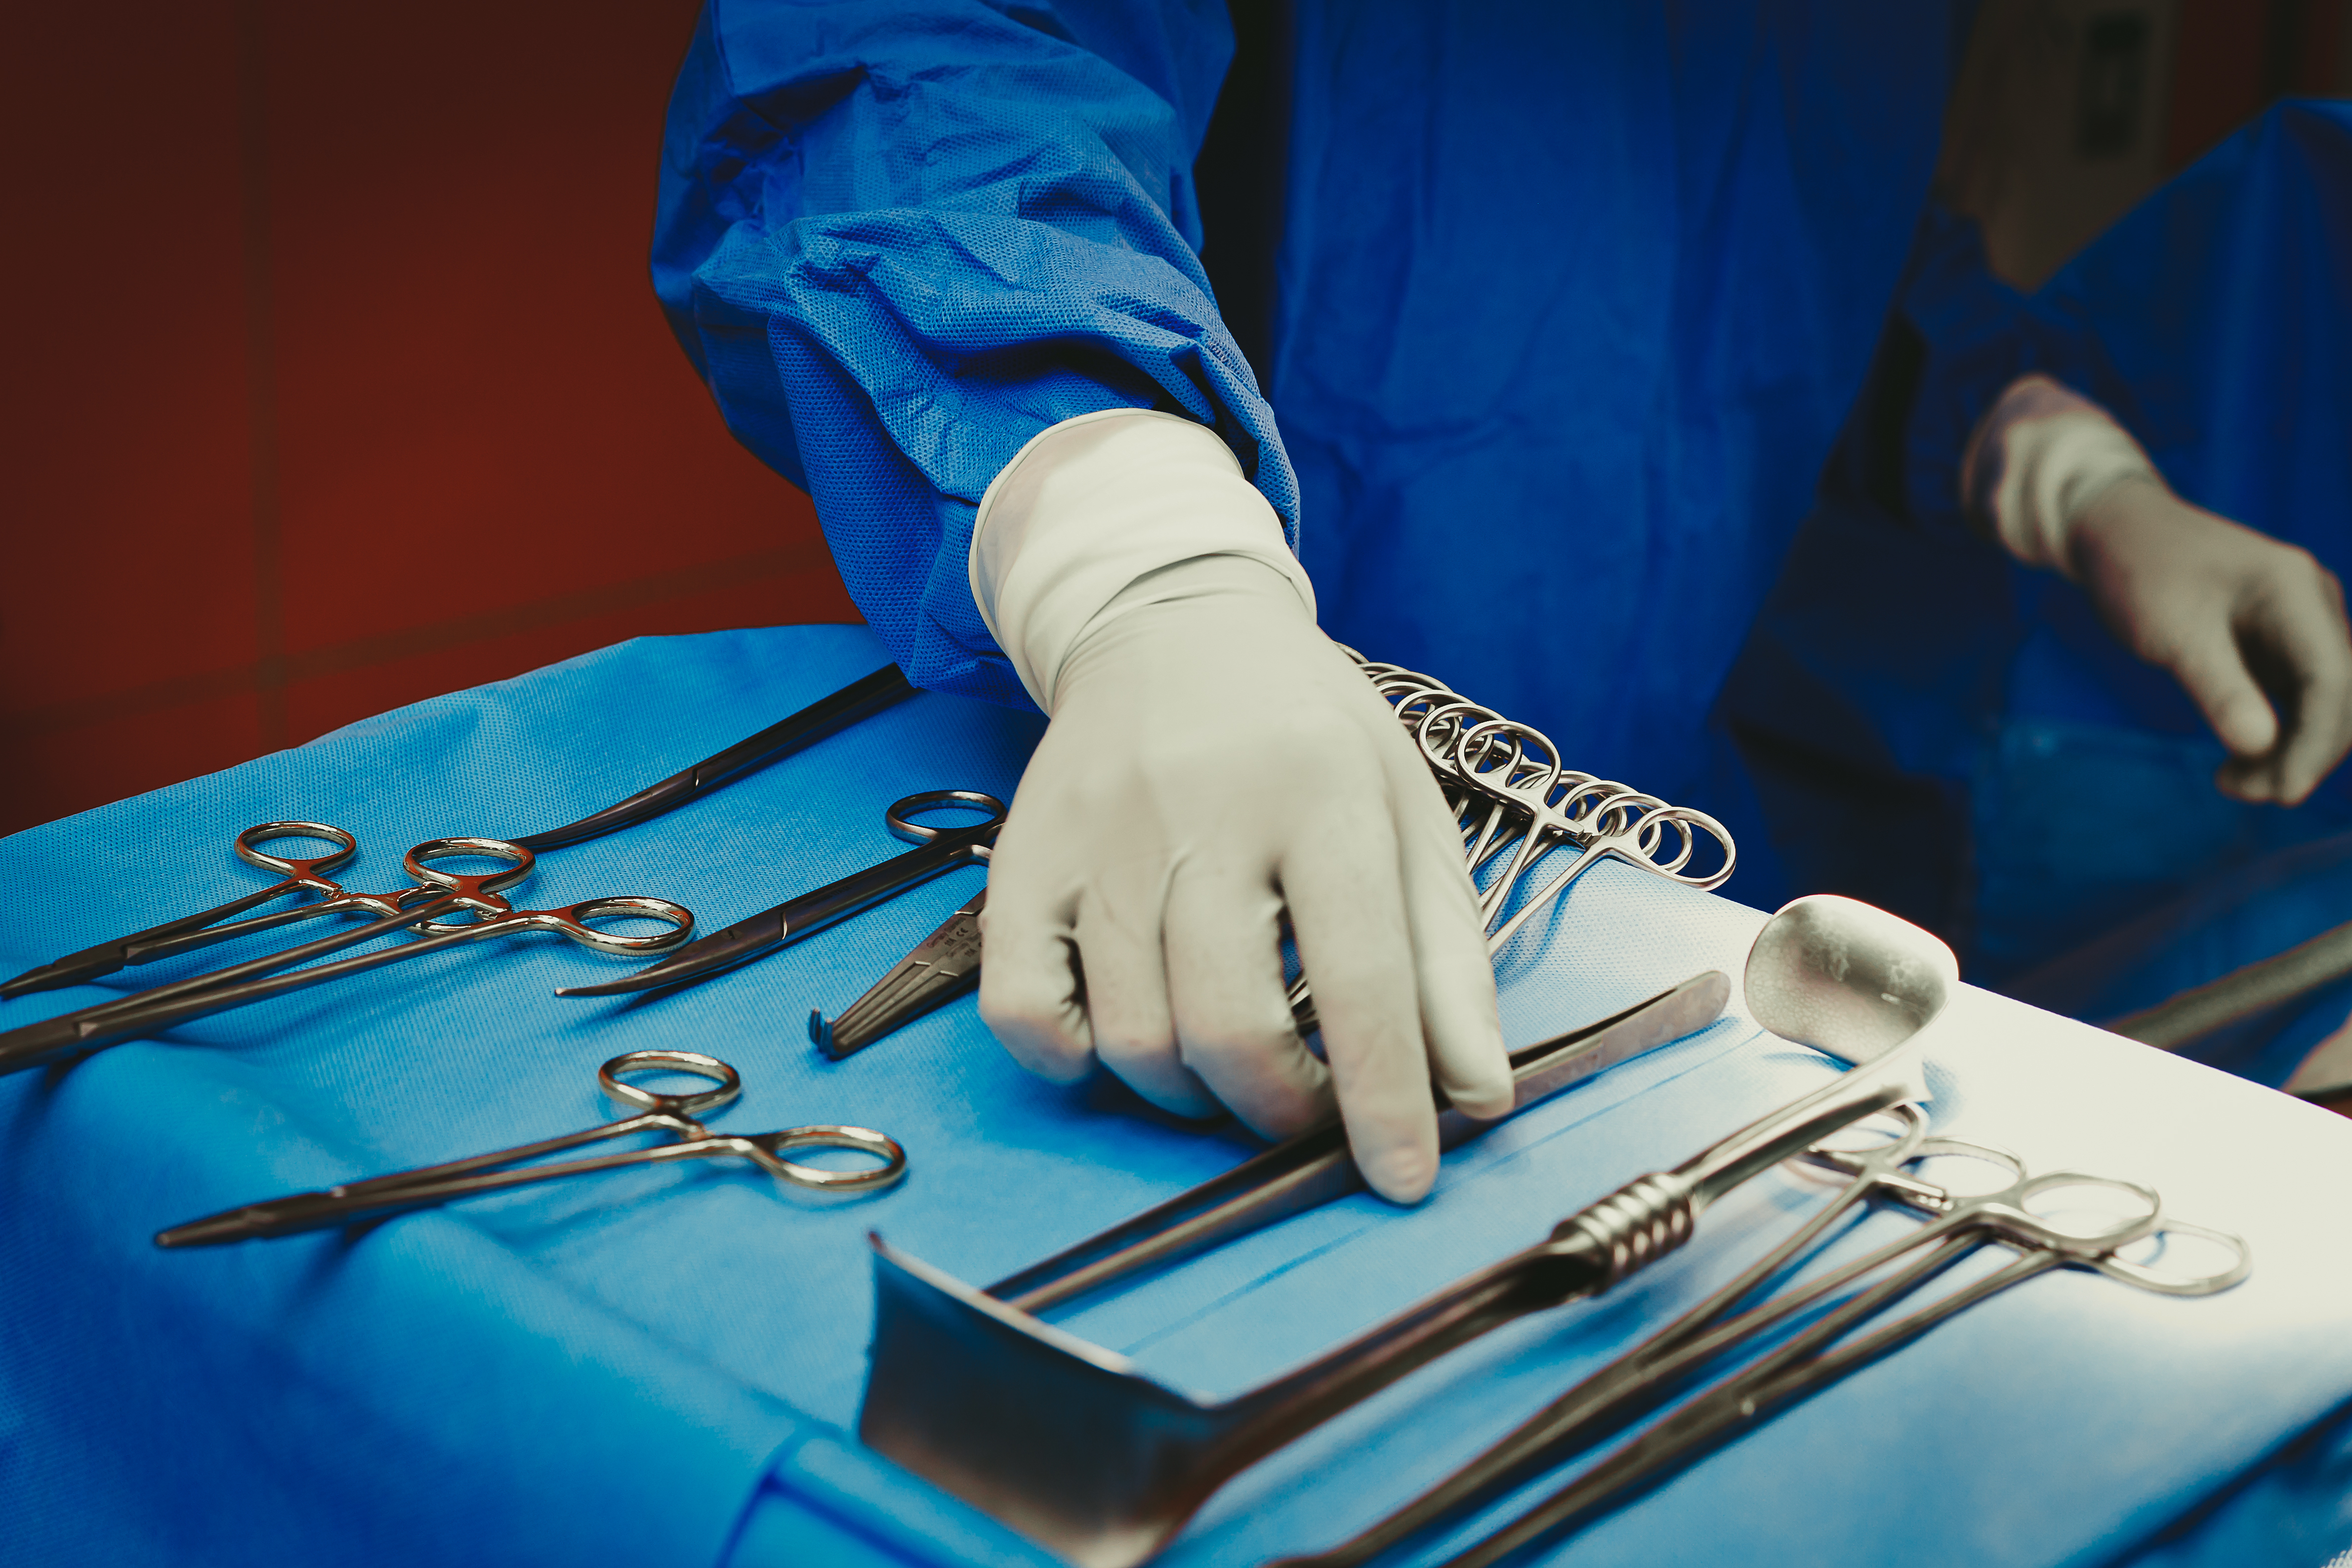 Benefits of Die Casting for Medical Equipment and Instruments